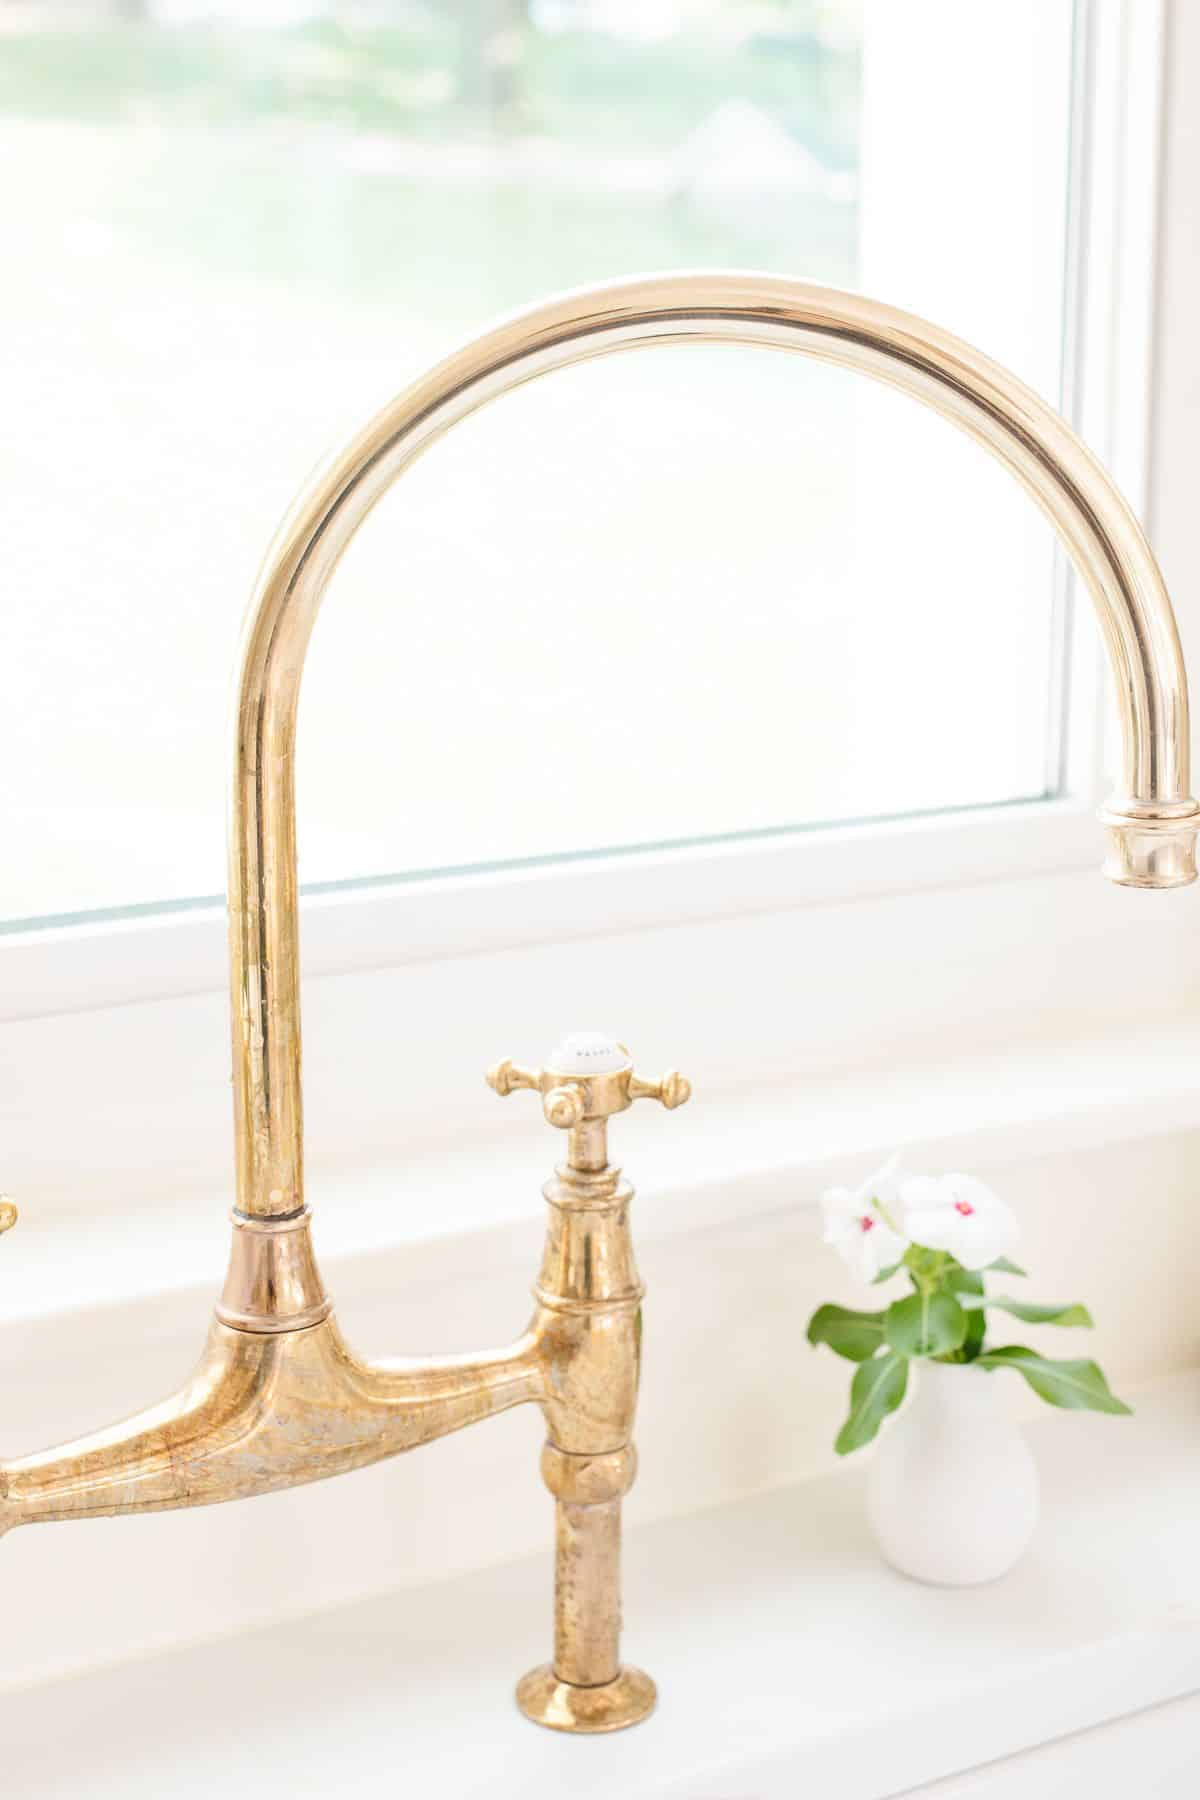 A brass kitchen faucet with some tarnish.